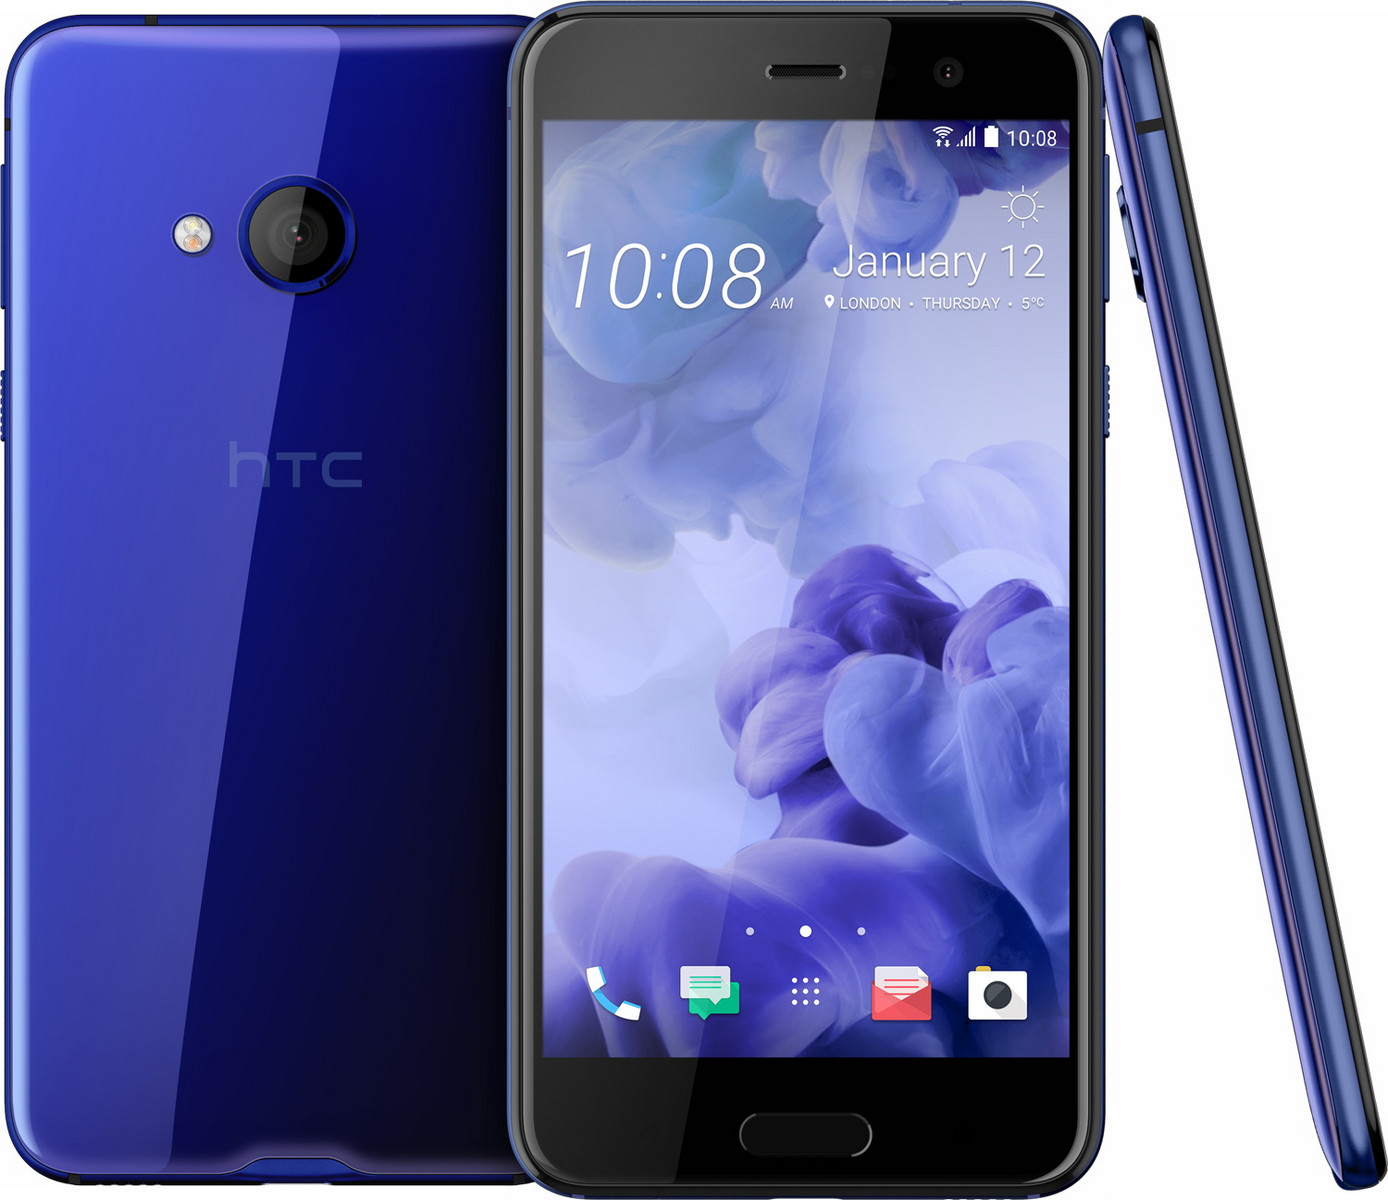 HTC Breeze